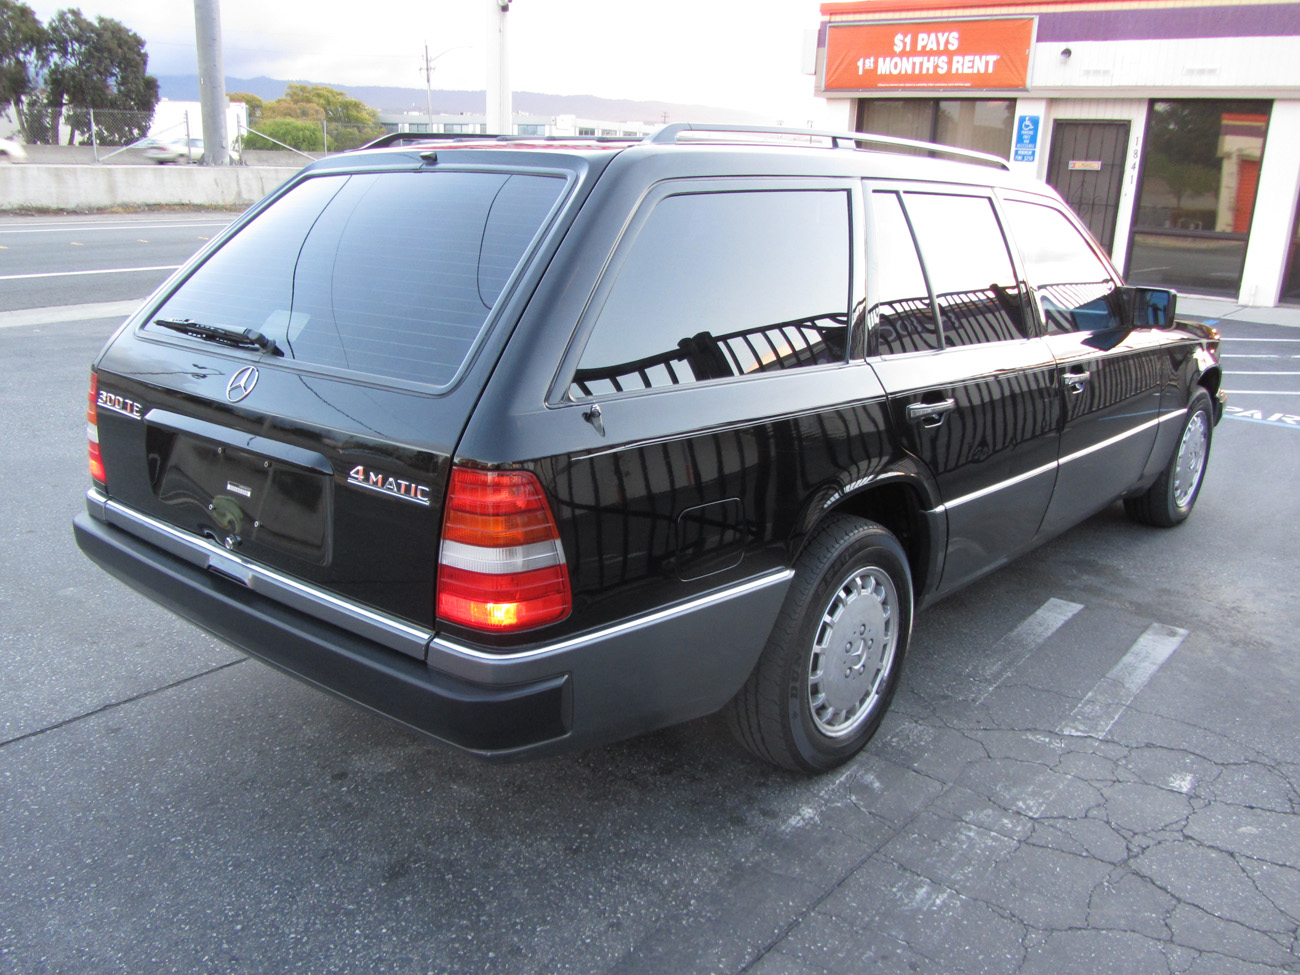 1987 mercedes benz 300 td turbo s124 in l a for Mercedes benz 300 td